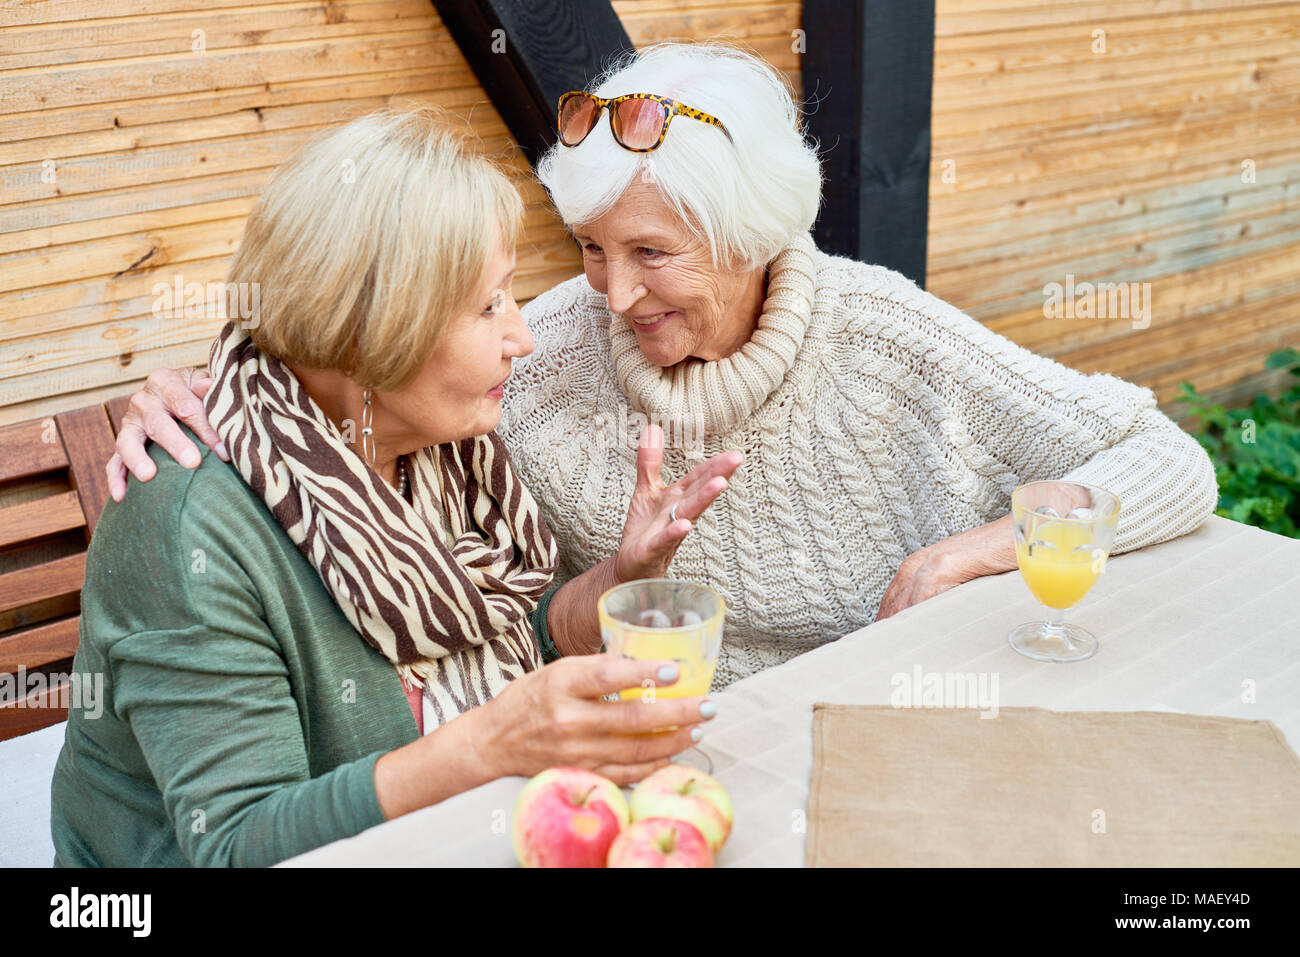 Senior Girlfriends in Cafe Together - Stock Image